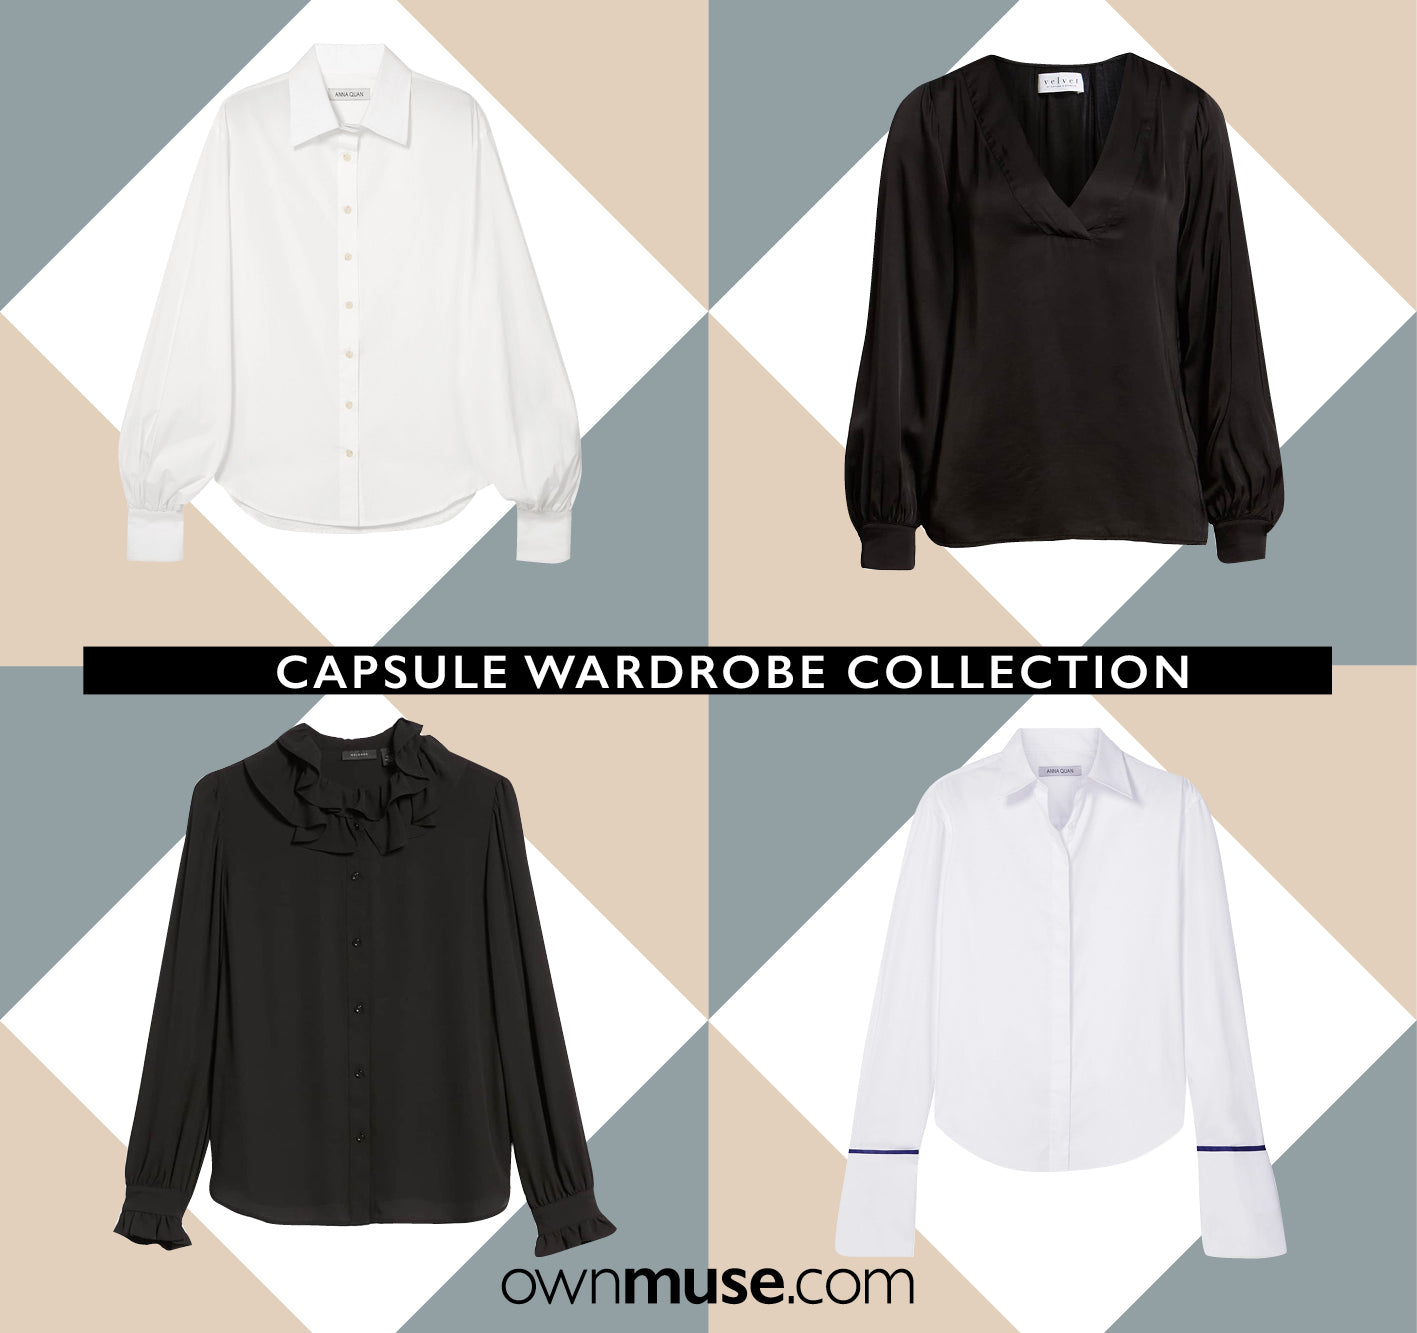 Capsule wardrobe collection shirts blouses tops